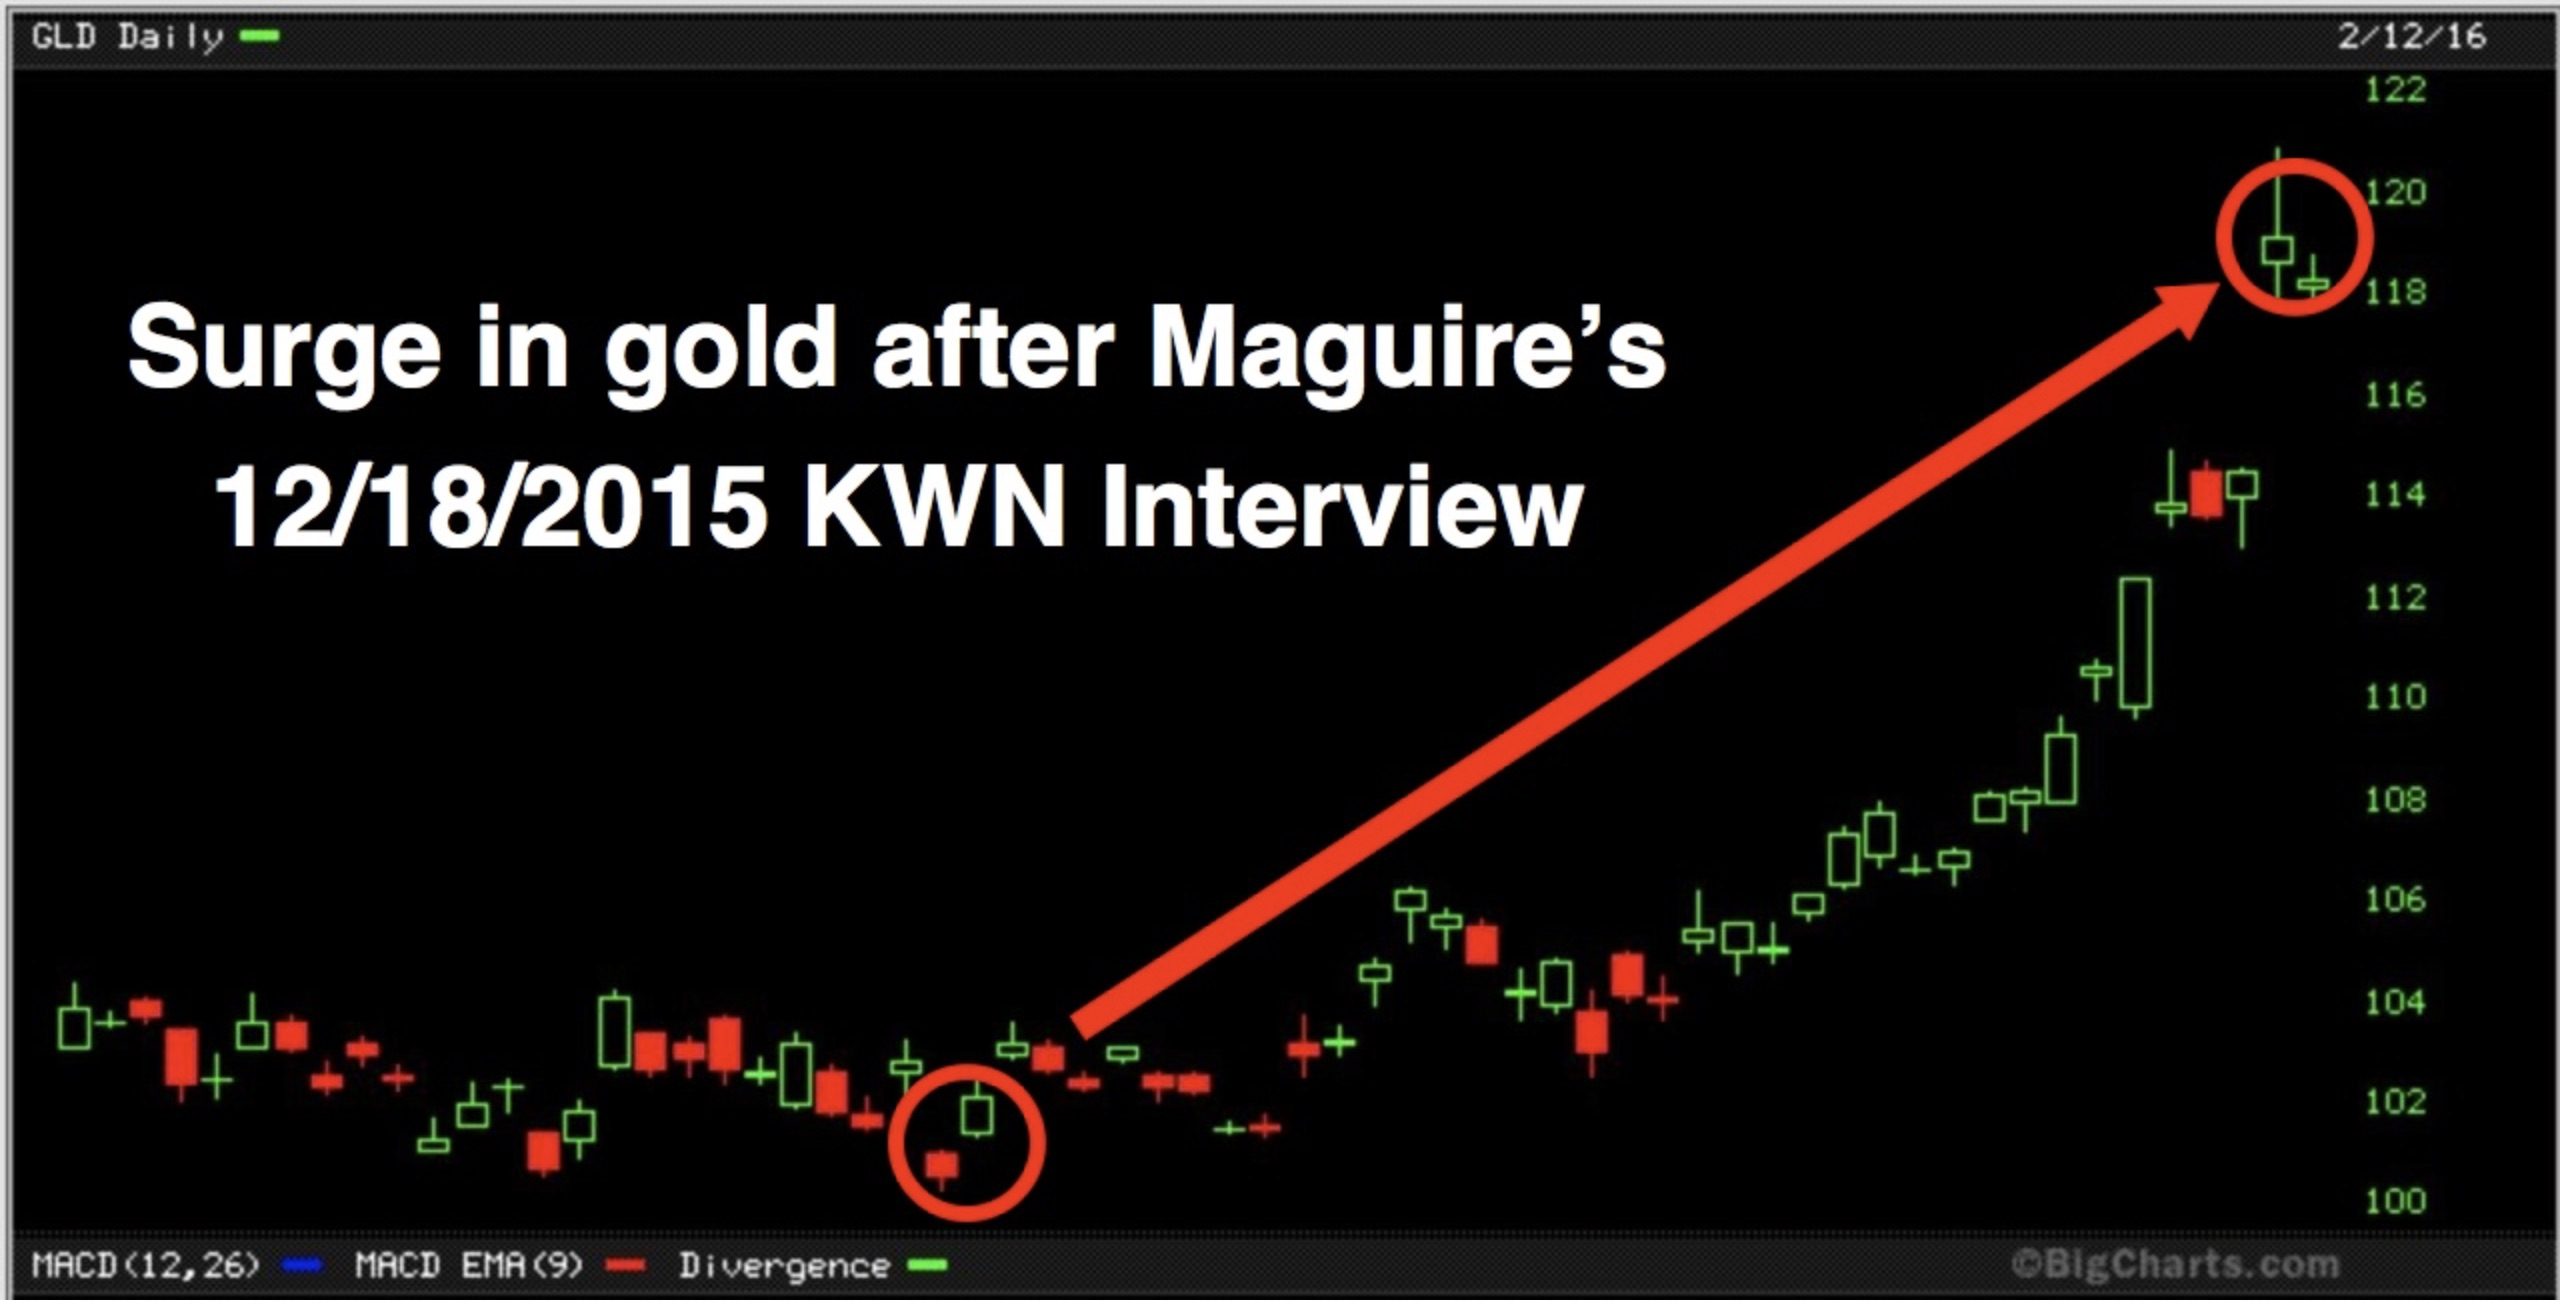 KWN Maguire I 2:12:2016